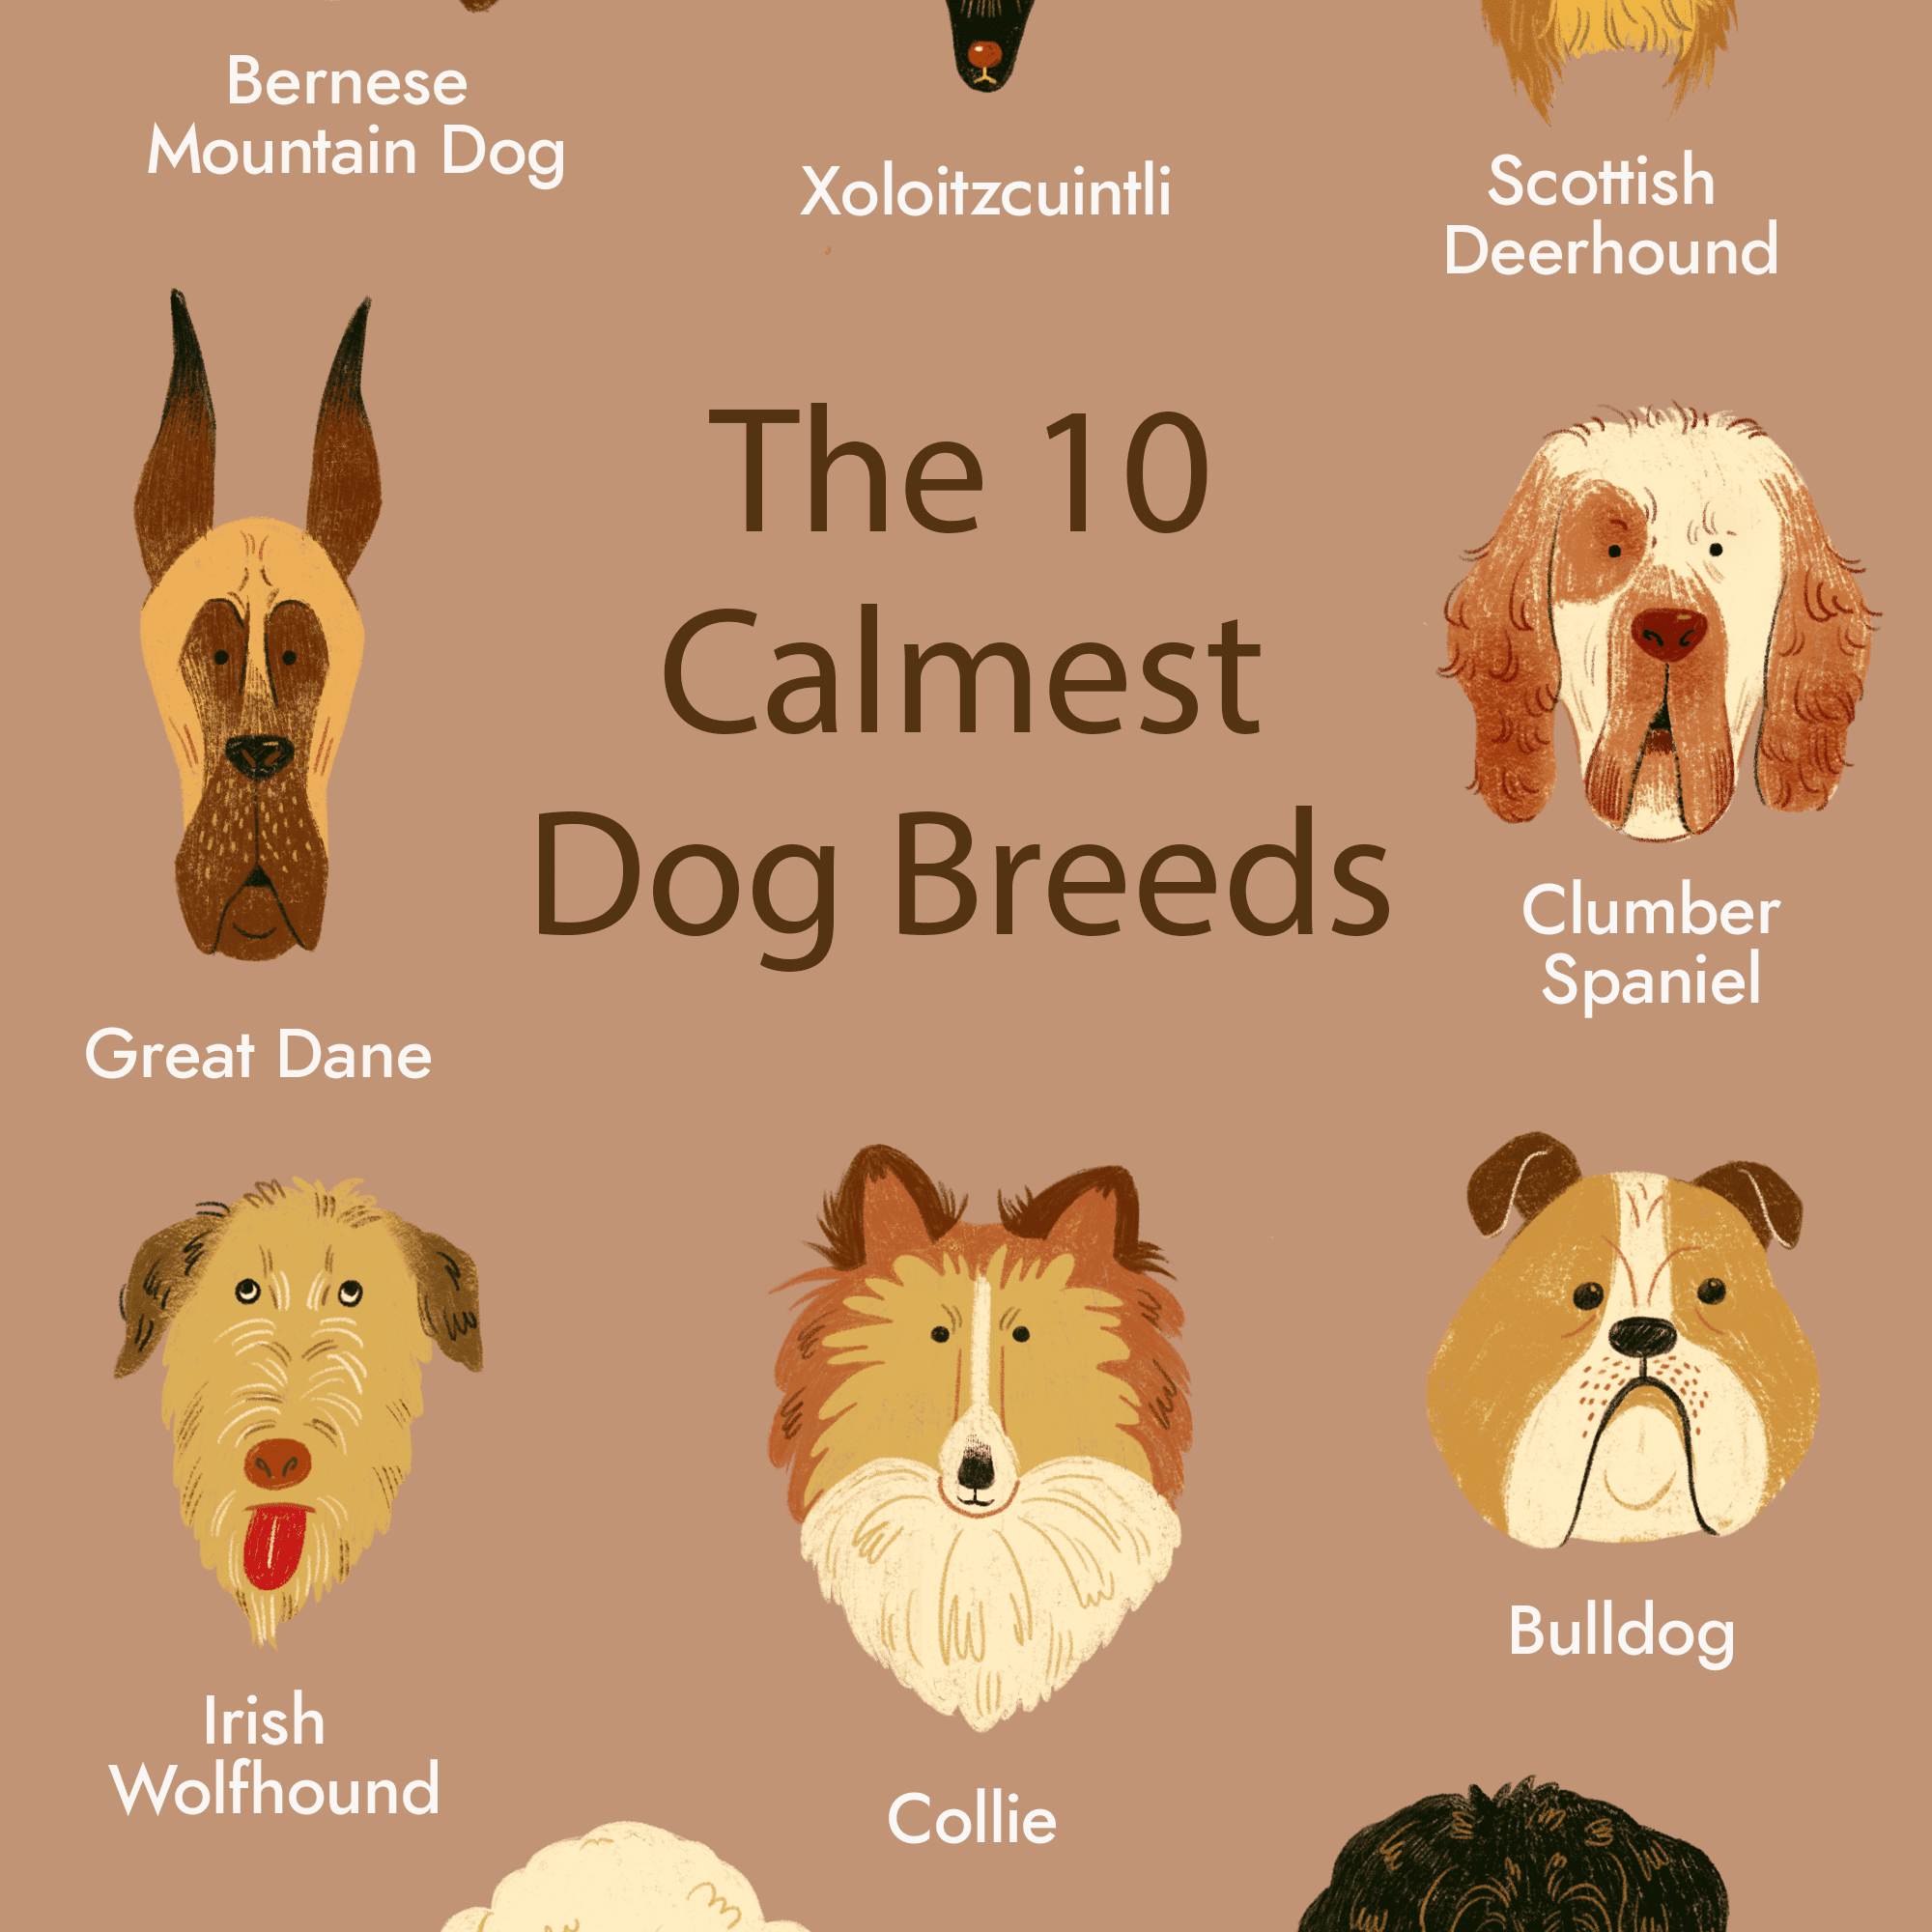 The Top 10 Calmest Dog Breeds Perfect for New Pet Owners With Kids